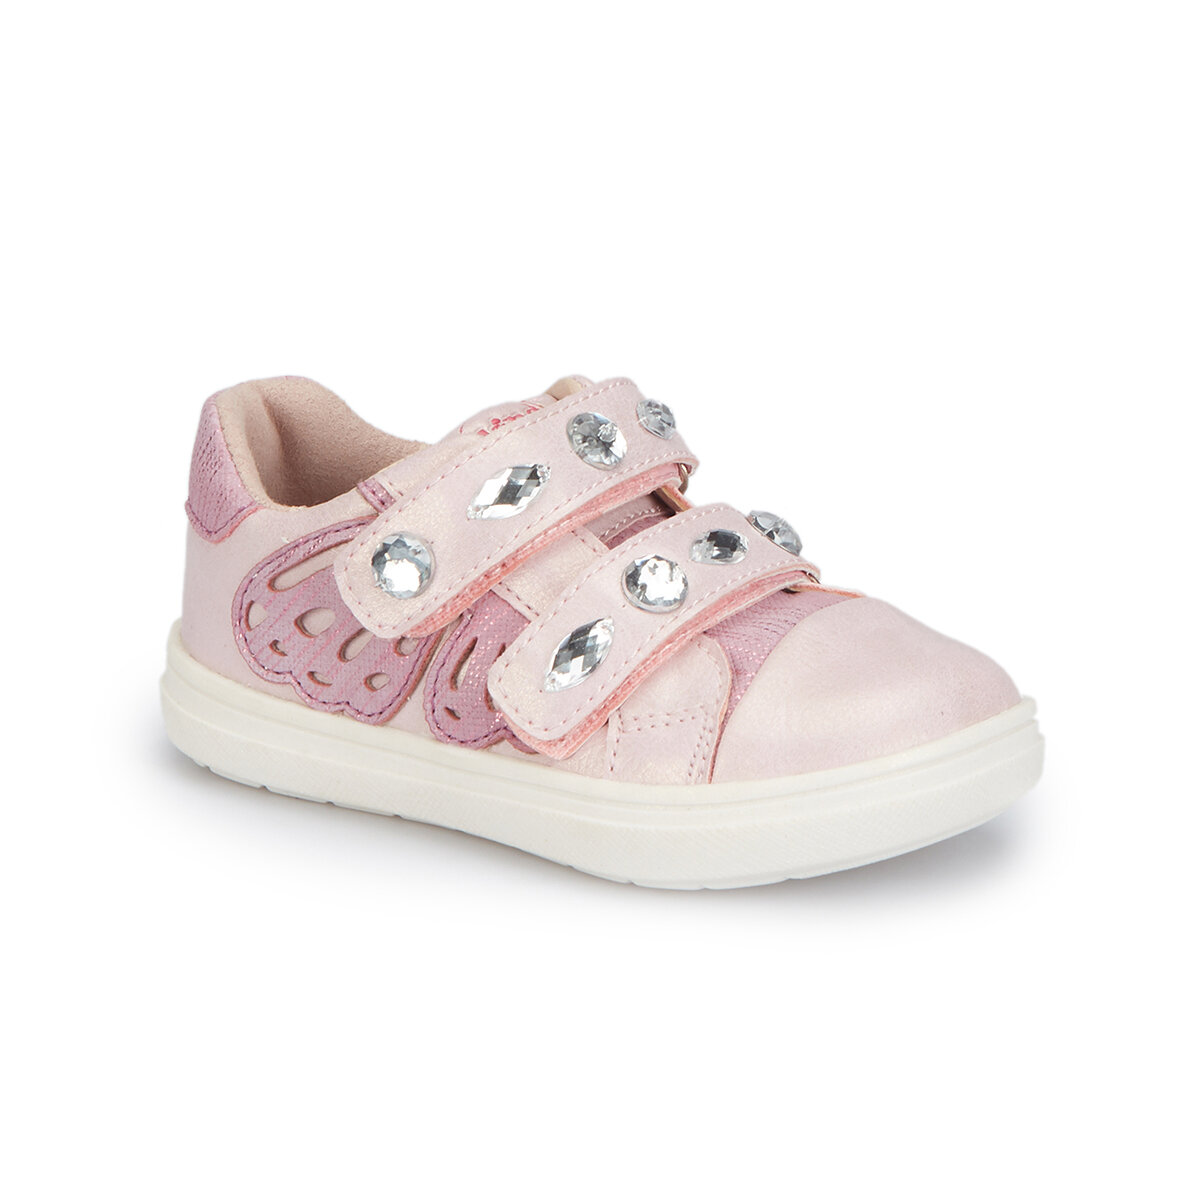 FLO 81. 510016.B Pink Female Child Sneaker Shoes Polaris